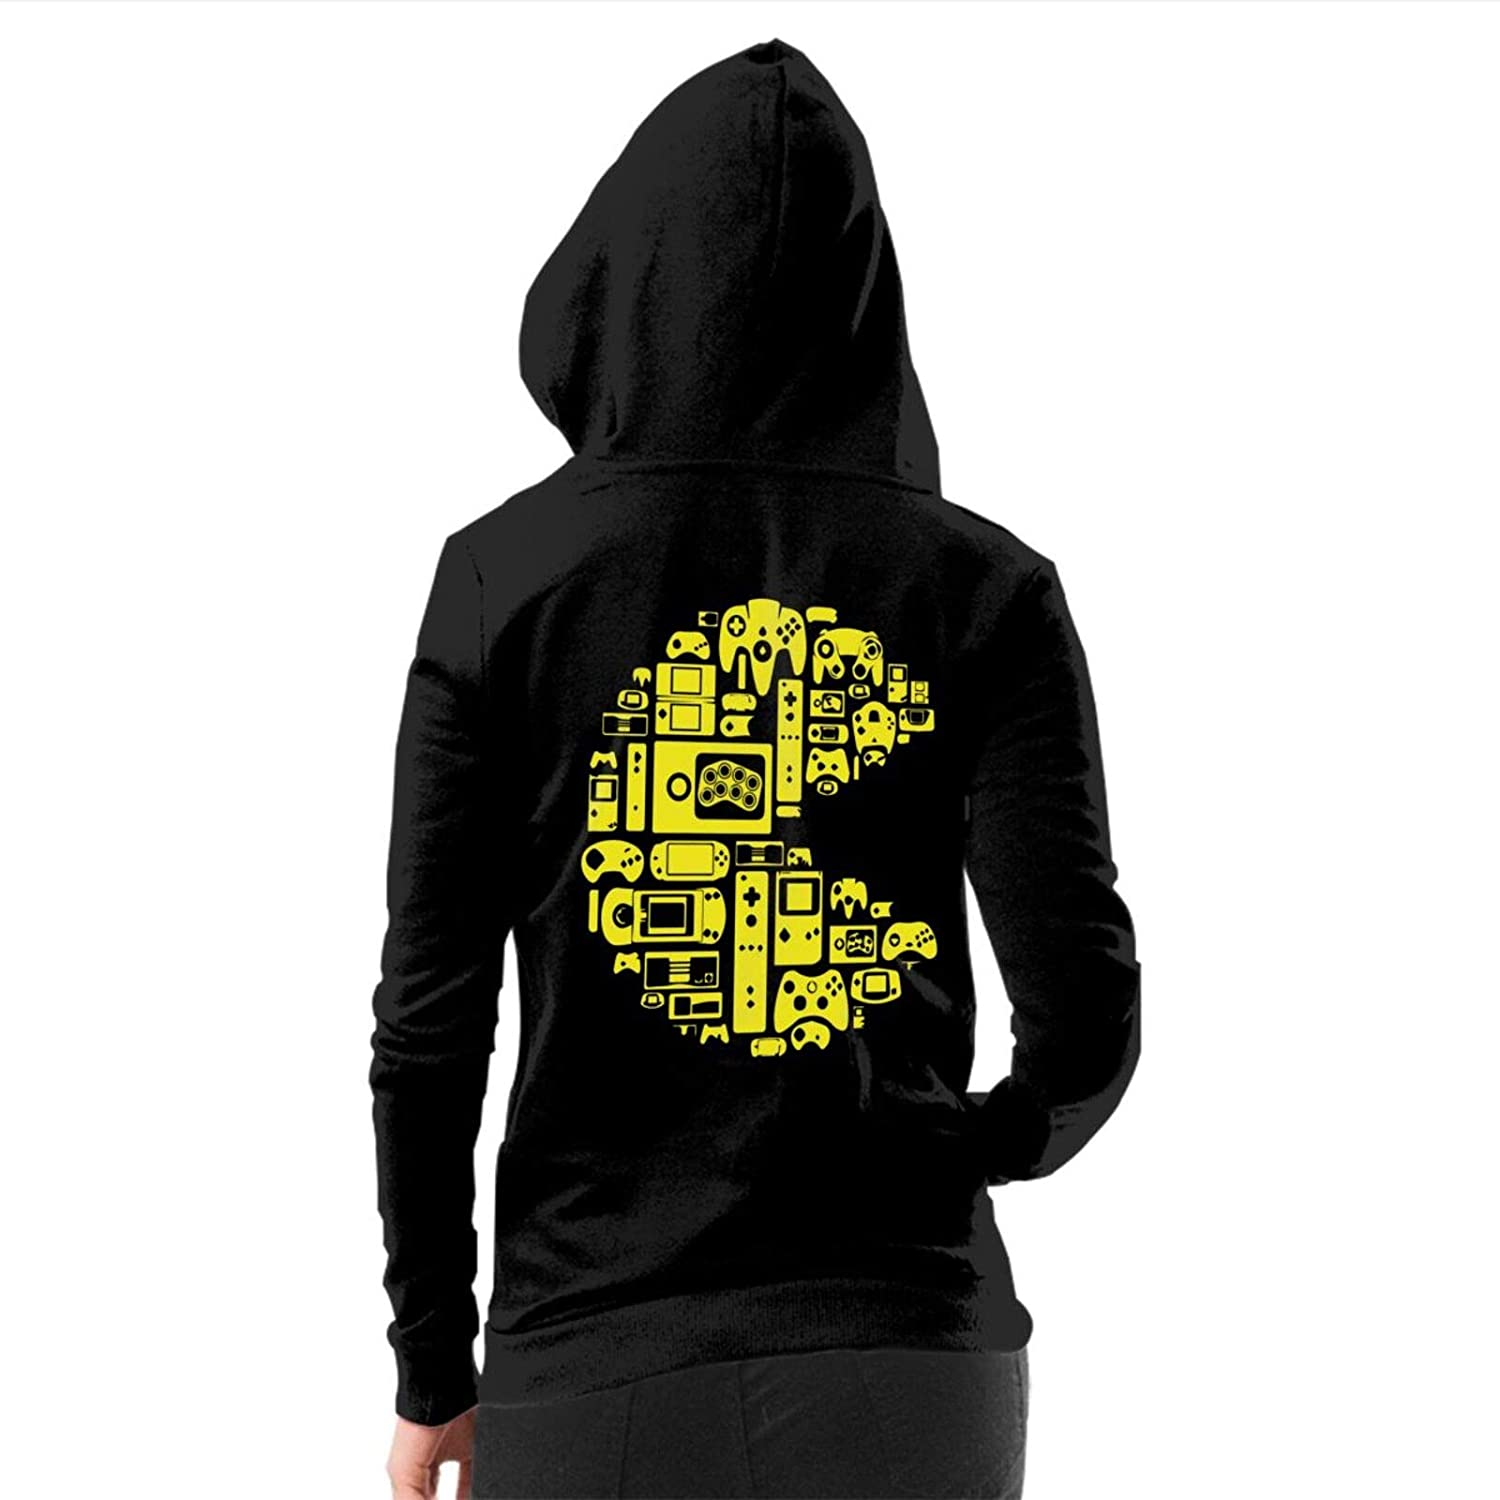 Keceur Women's Hoodies Casual Hooded Sweatshirt Printed Long Sleeve Zip Up Jacket Outerwear Funny Coat with Pockets S-XL